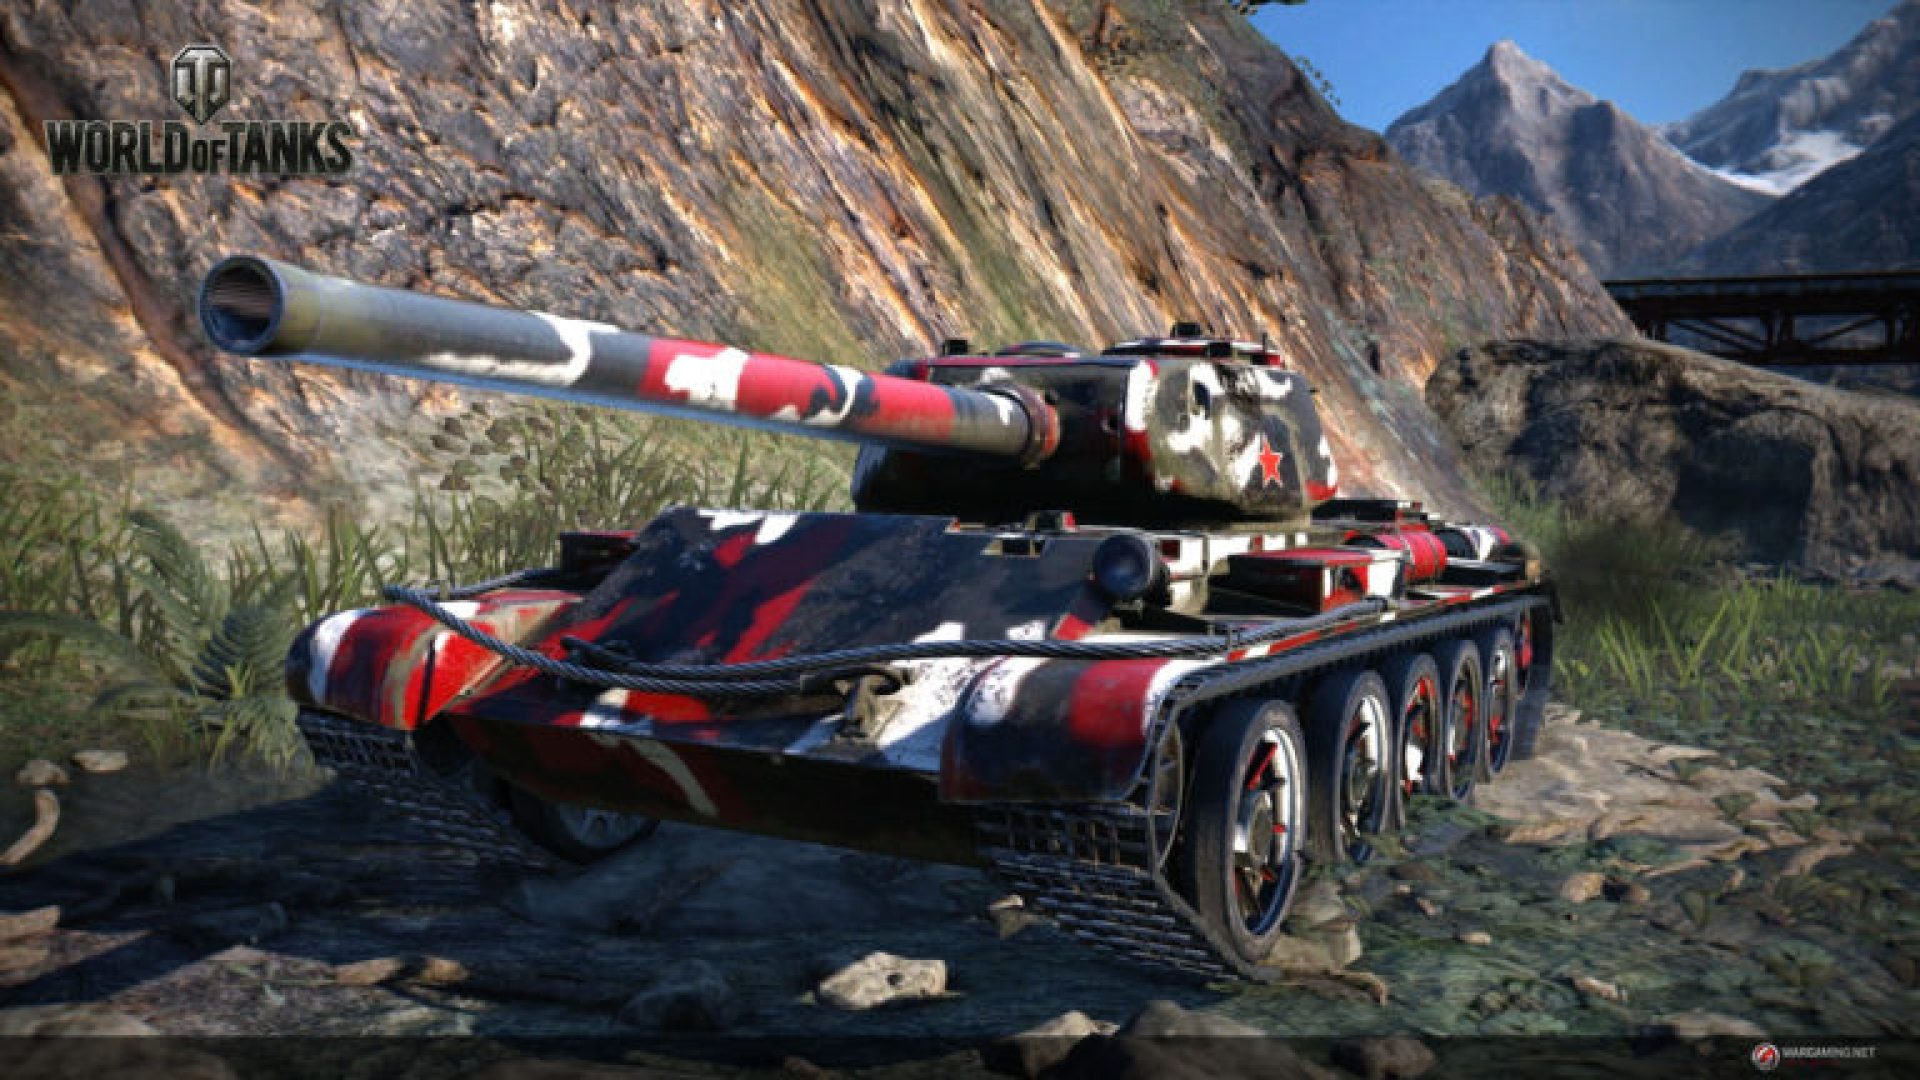 The T-54 Motherland tank returns to World of Tanks for the